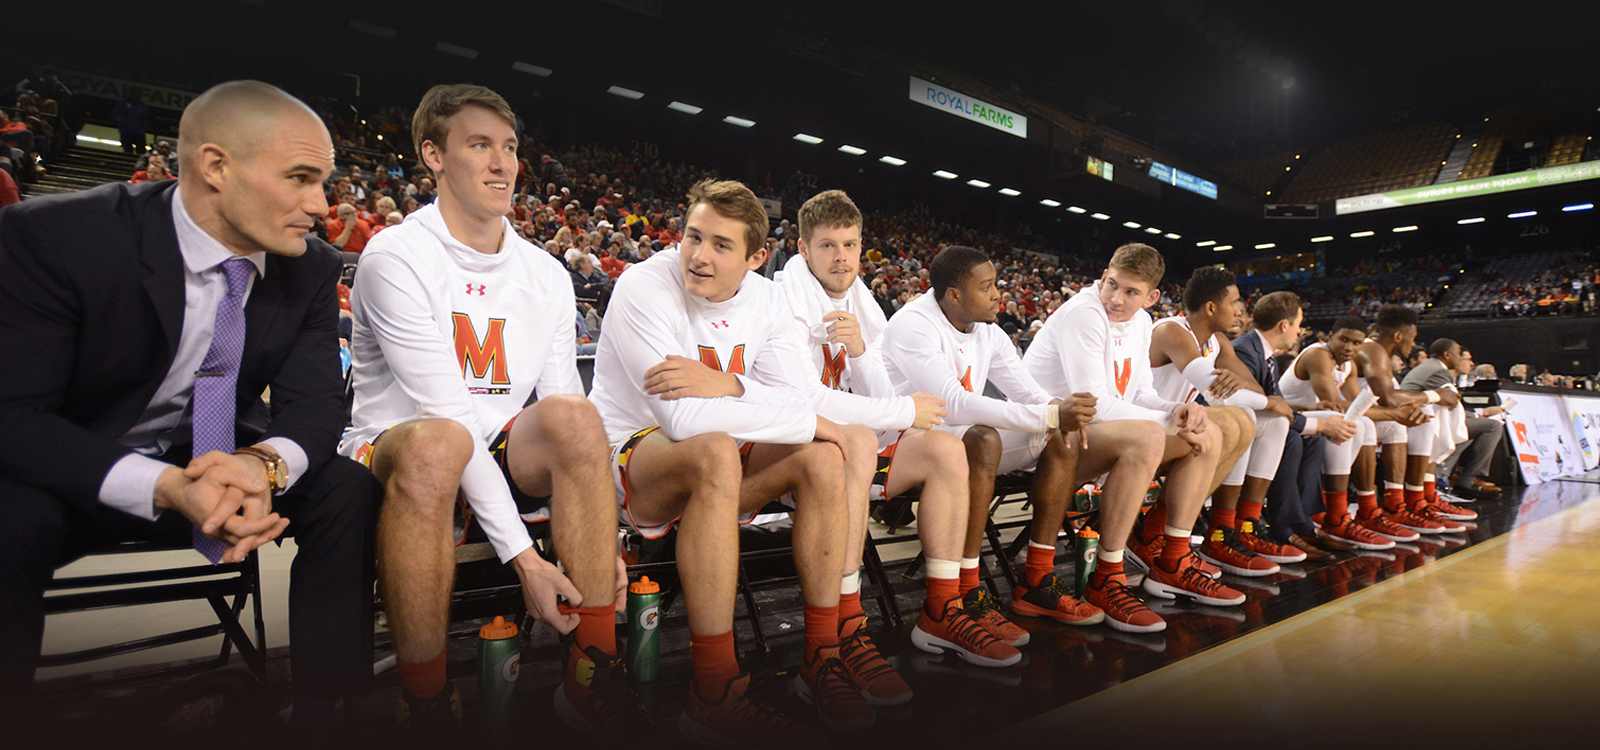 Support Coach Turgeon and the Maryland Basketball Program